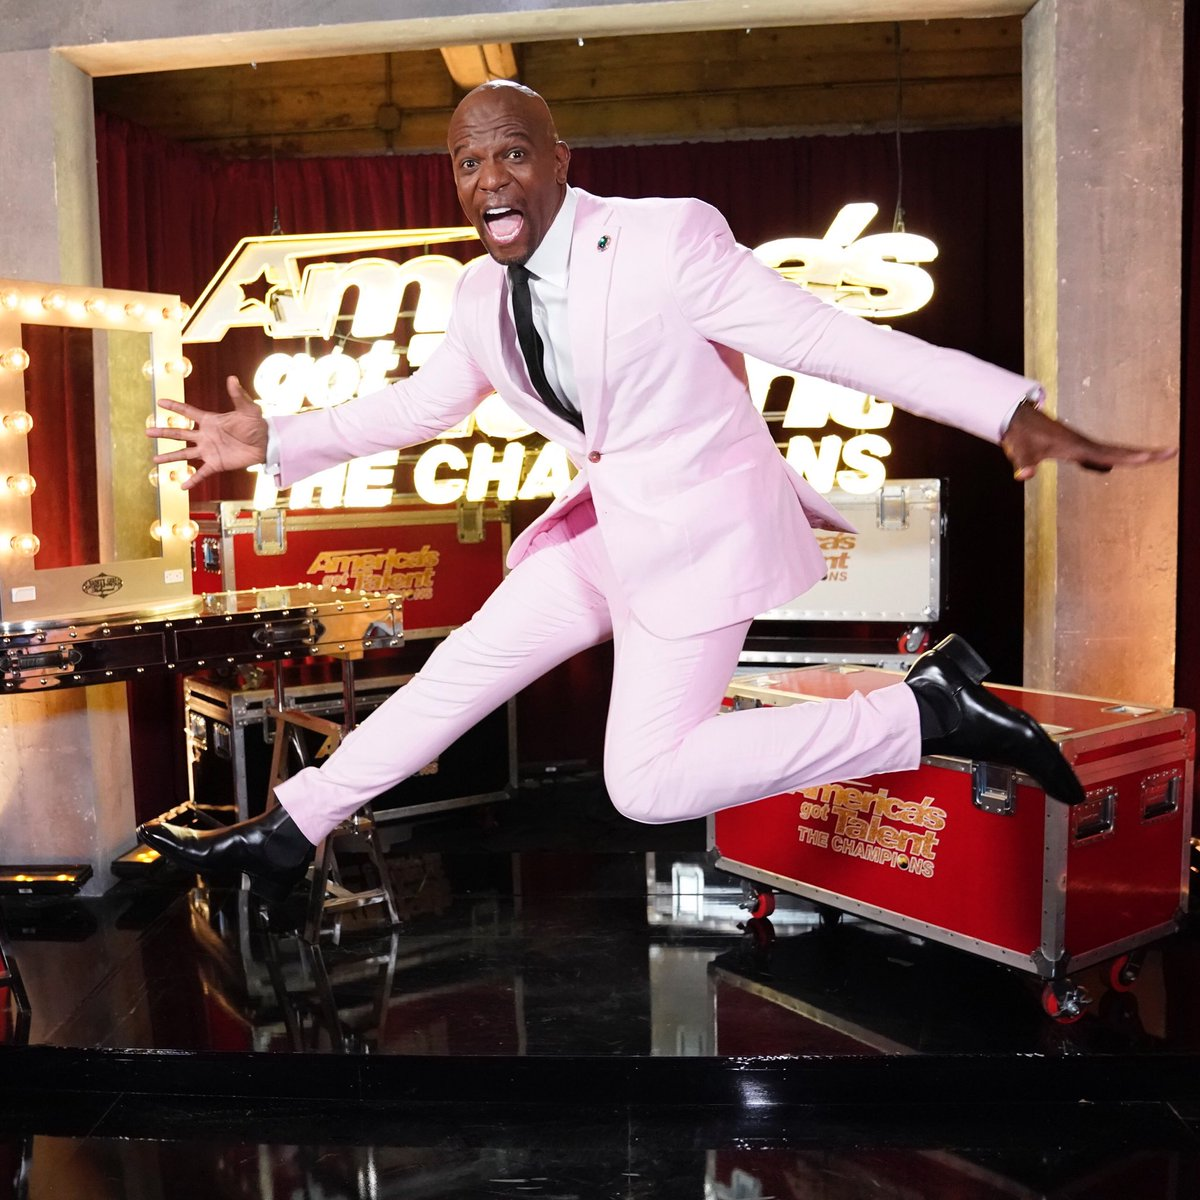 THE FLOOR IS TOXIC MASCULINITY! JUMP!   #AmericasGotTerry